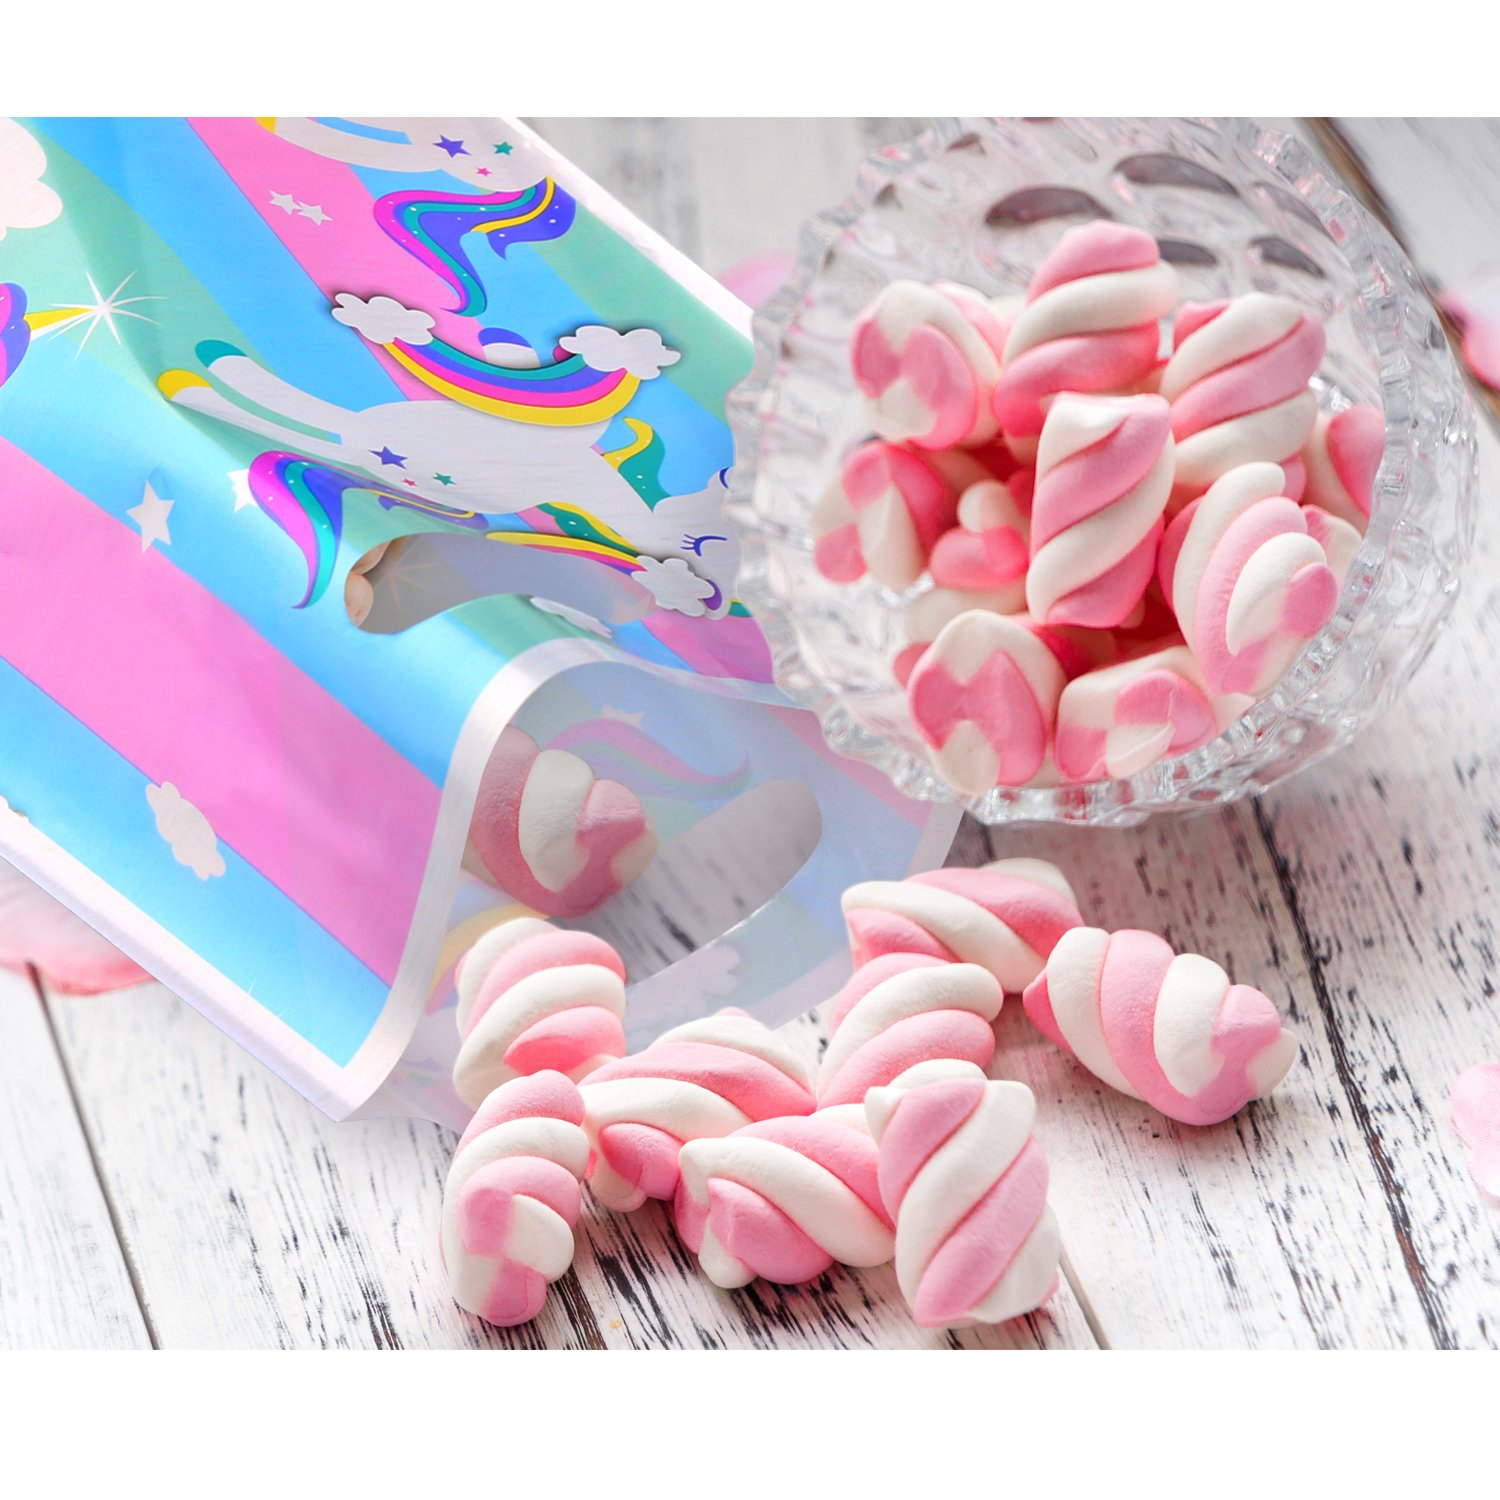 Candy Treat Bags by Party Crush Goodie Bags 24 Unicorn Party Favor Bags